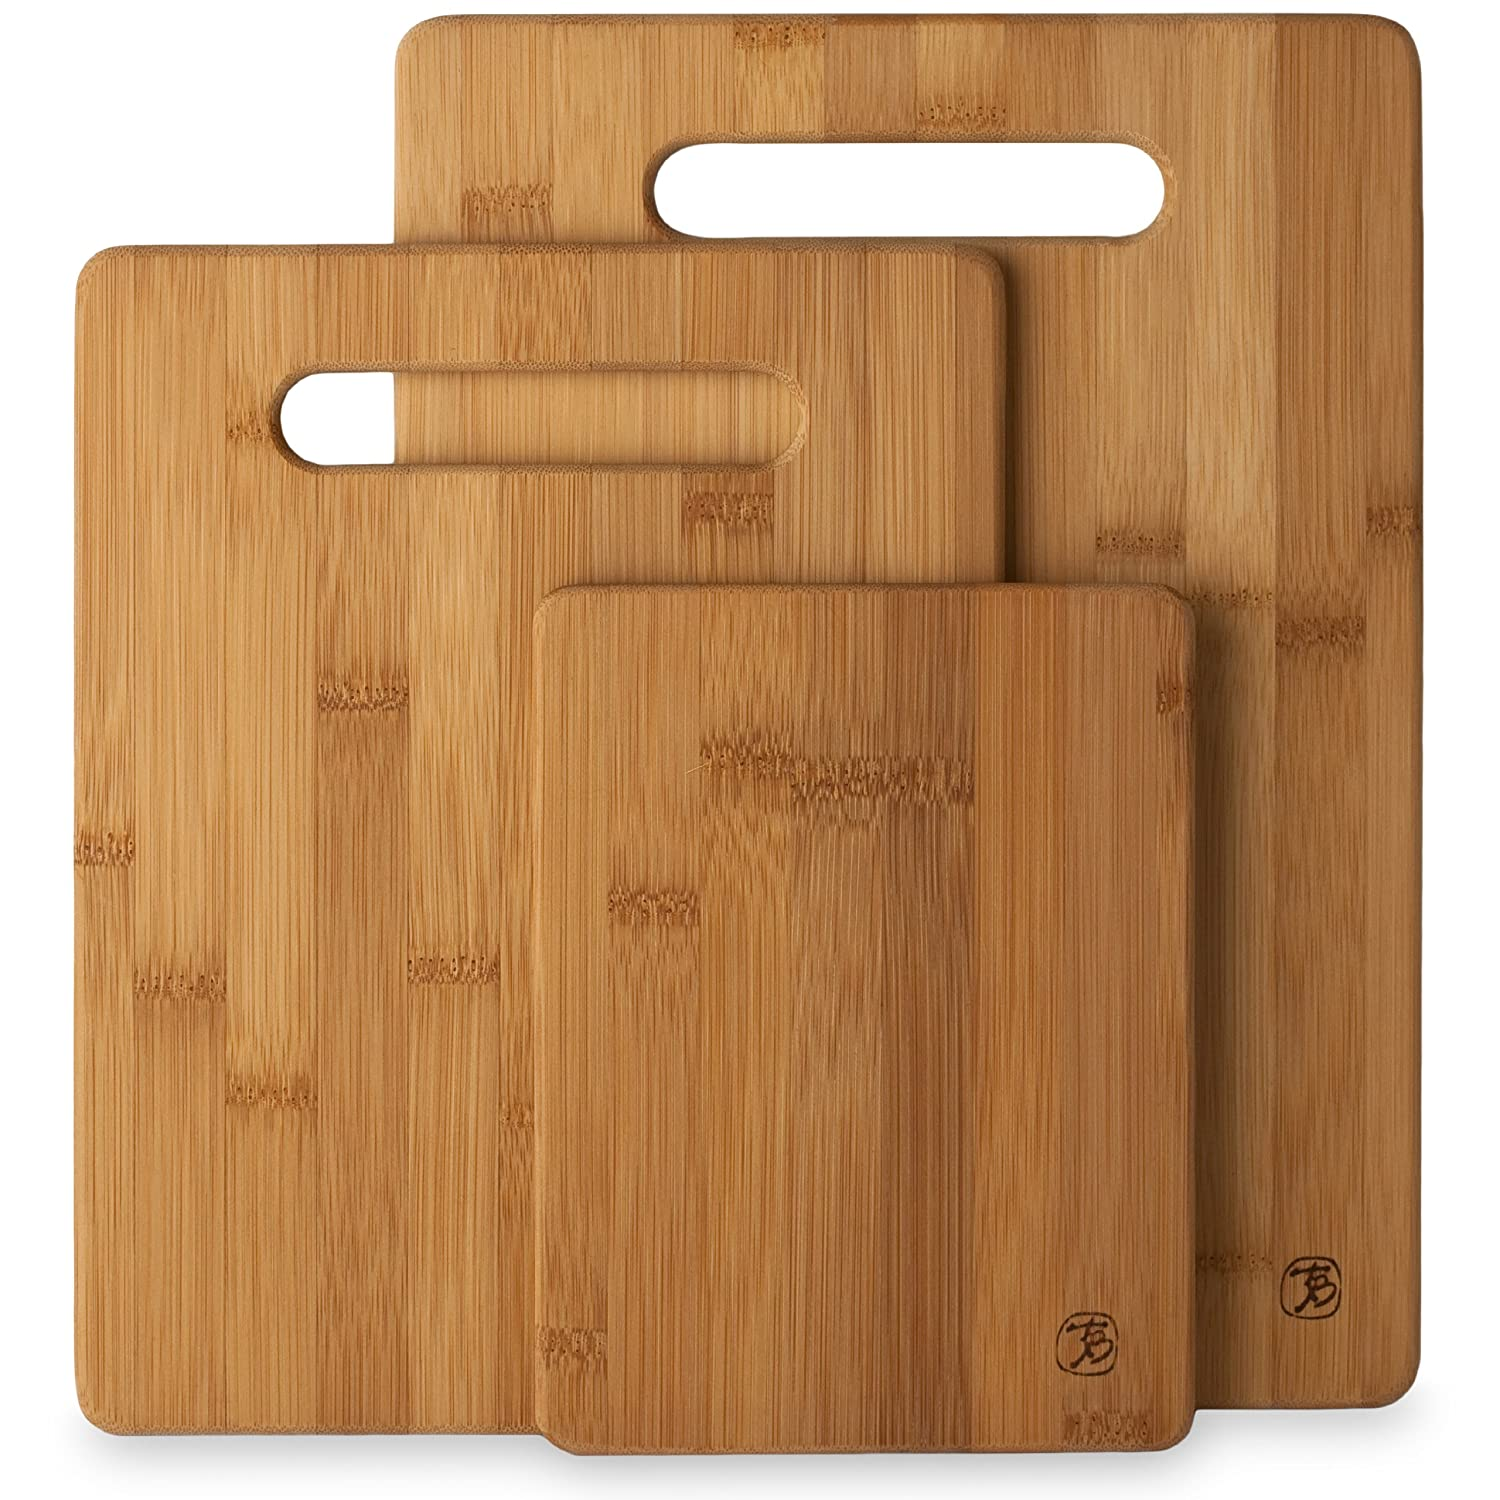 cutting board review kitchen cutting table Cutting Board Set Image http ecx images amazon com